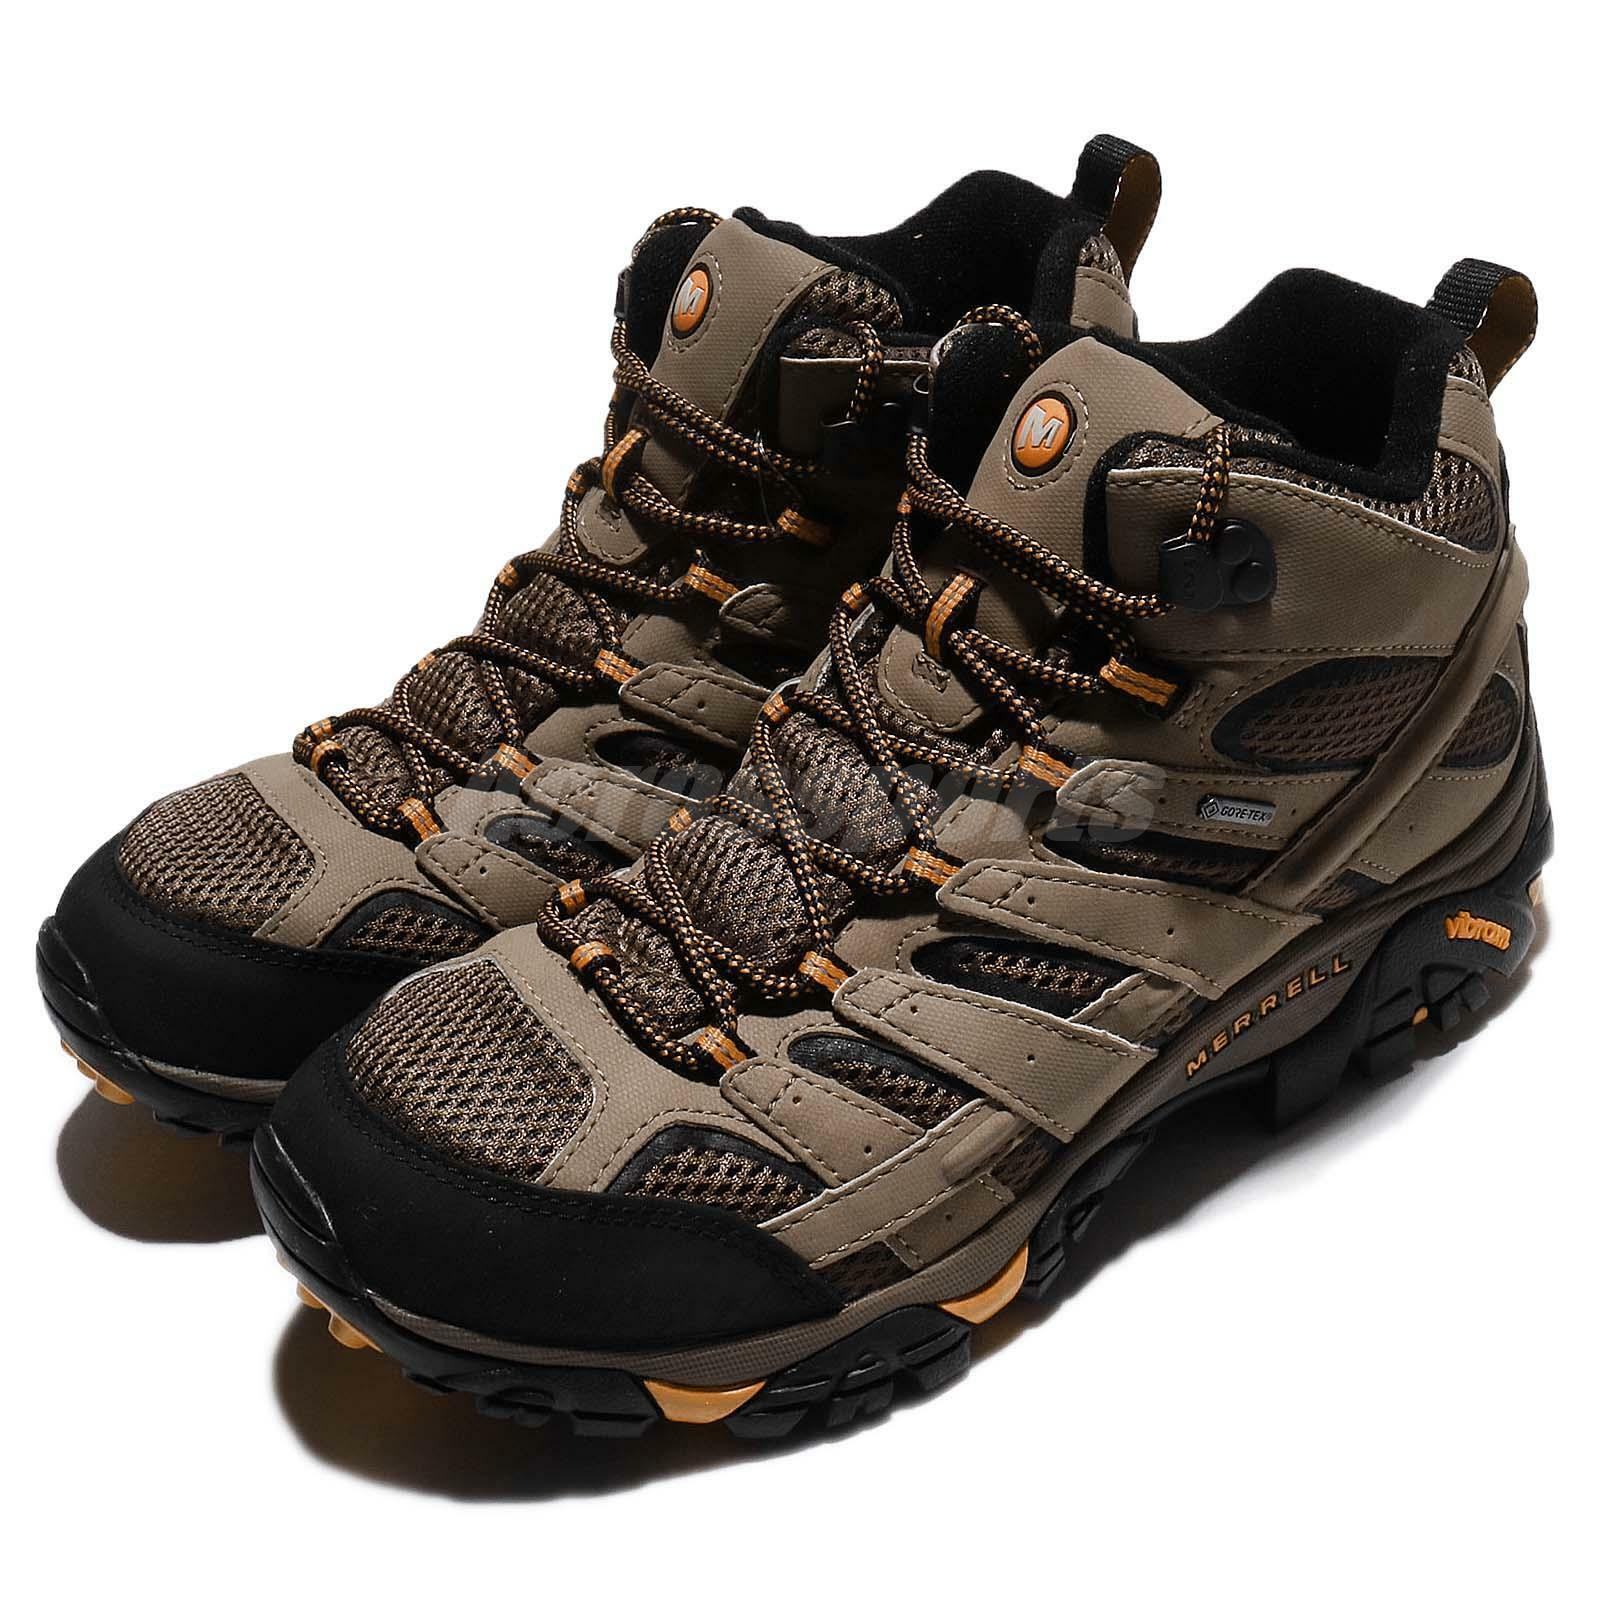 Merrell Moab 2 Mid GTX Wide  Gore -Tex Walnut Marronee Men Outdoor scarpe J06057W  designer online